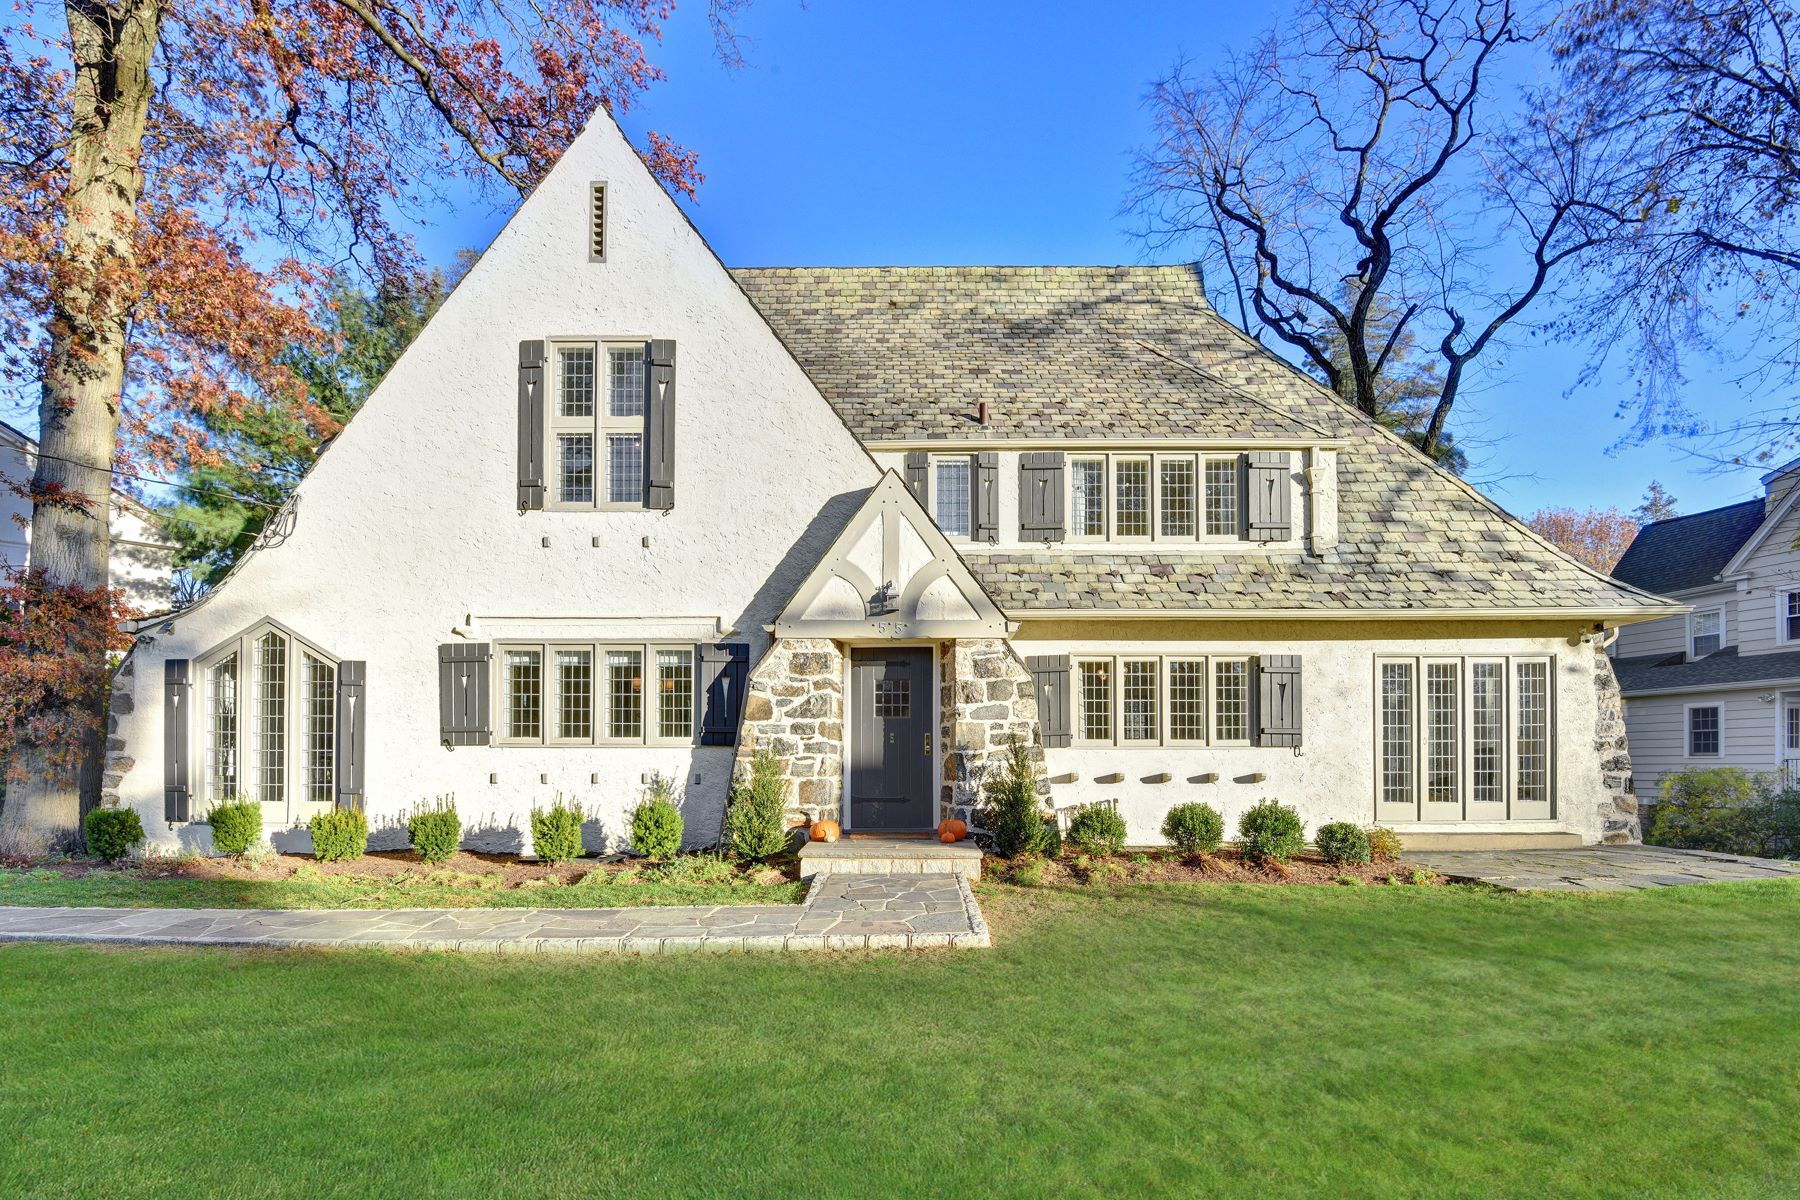 Single Family Home for Sale at Modern Sundrenched Tudor 55 Lyncroft Road New Rochelle, New York 10804 United States